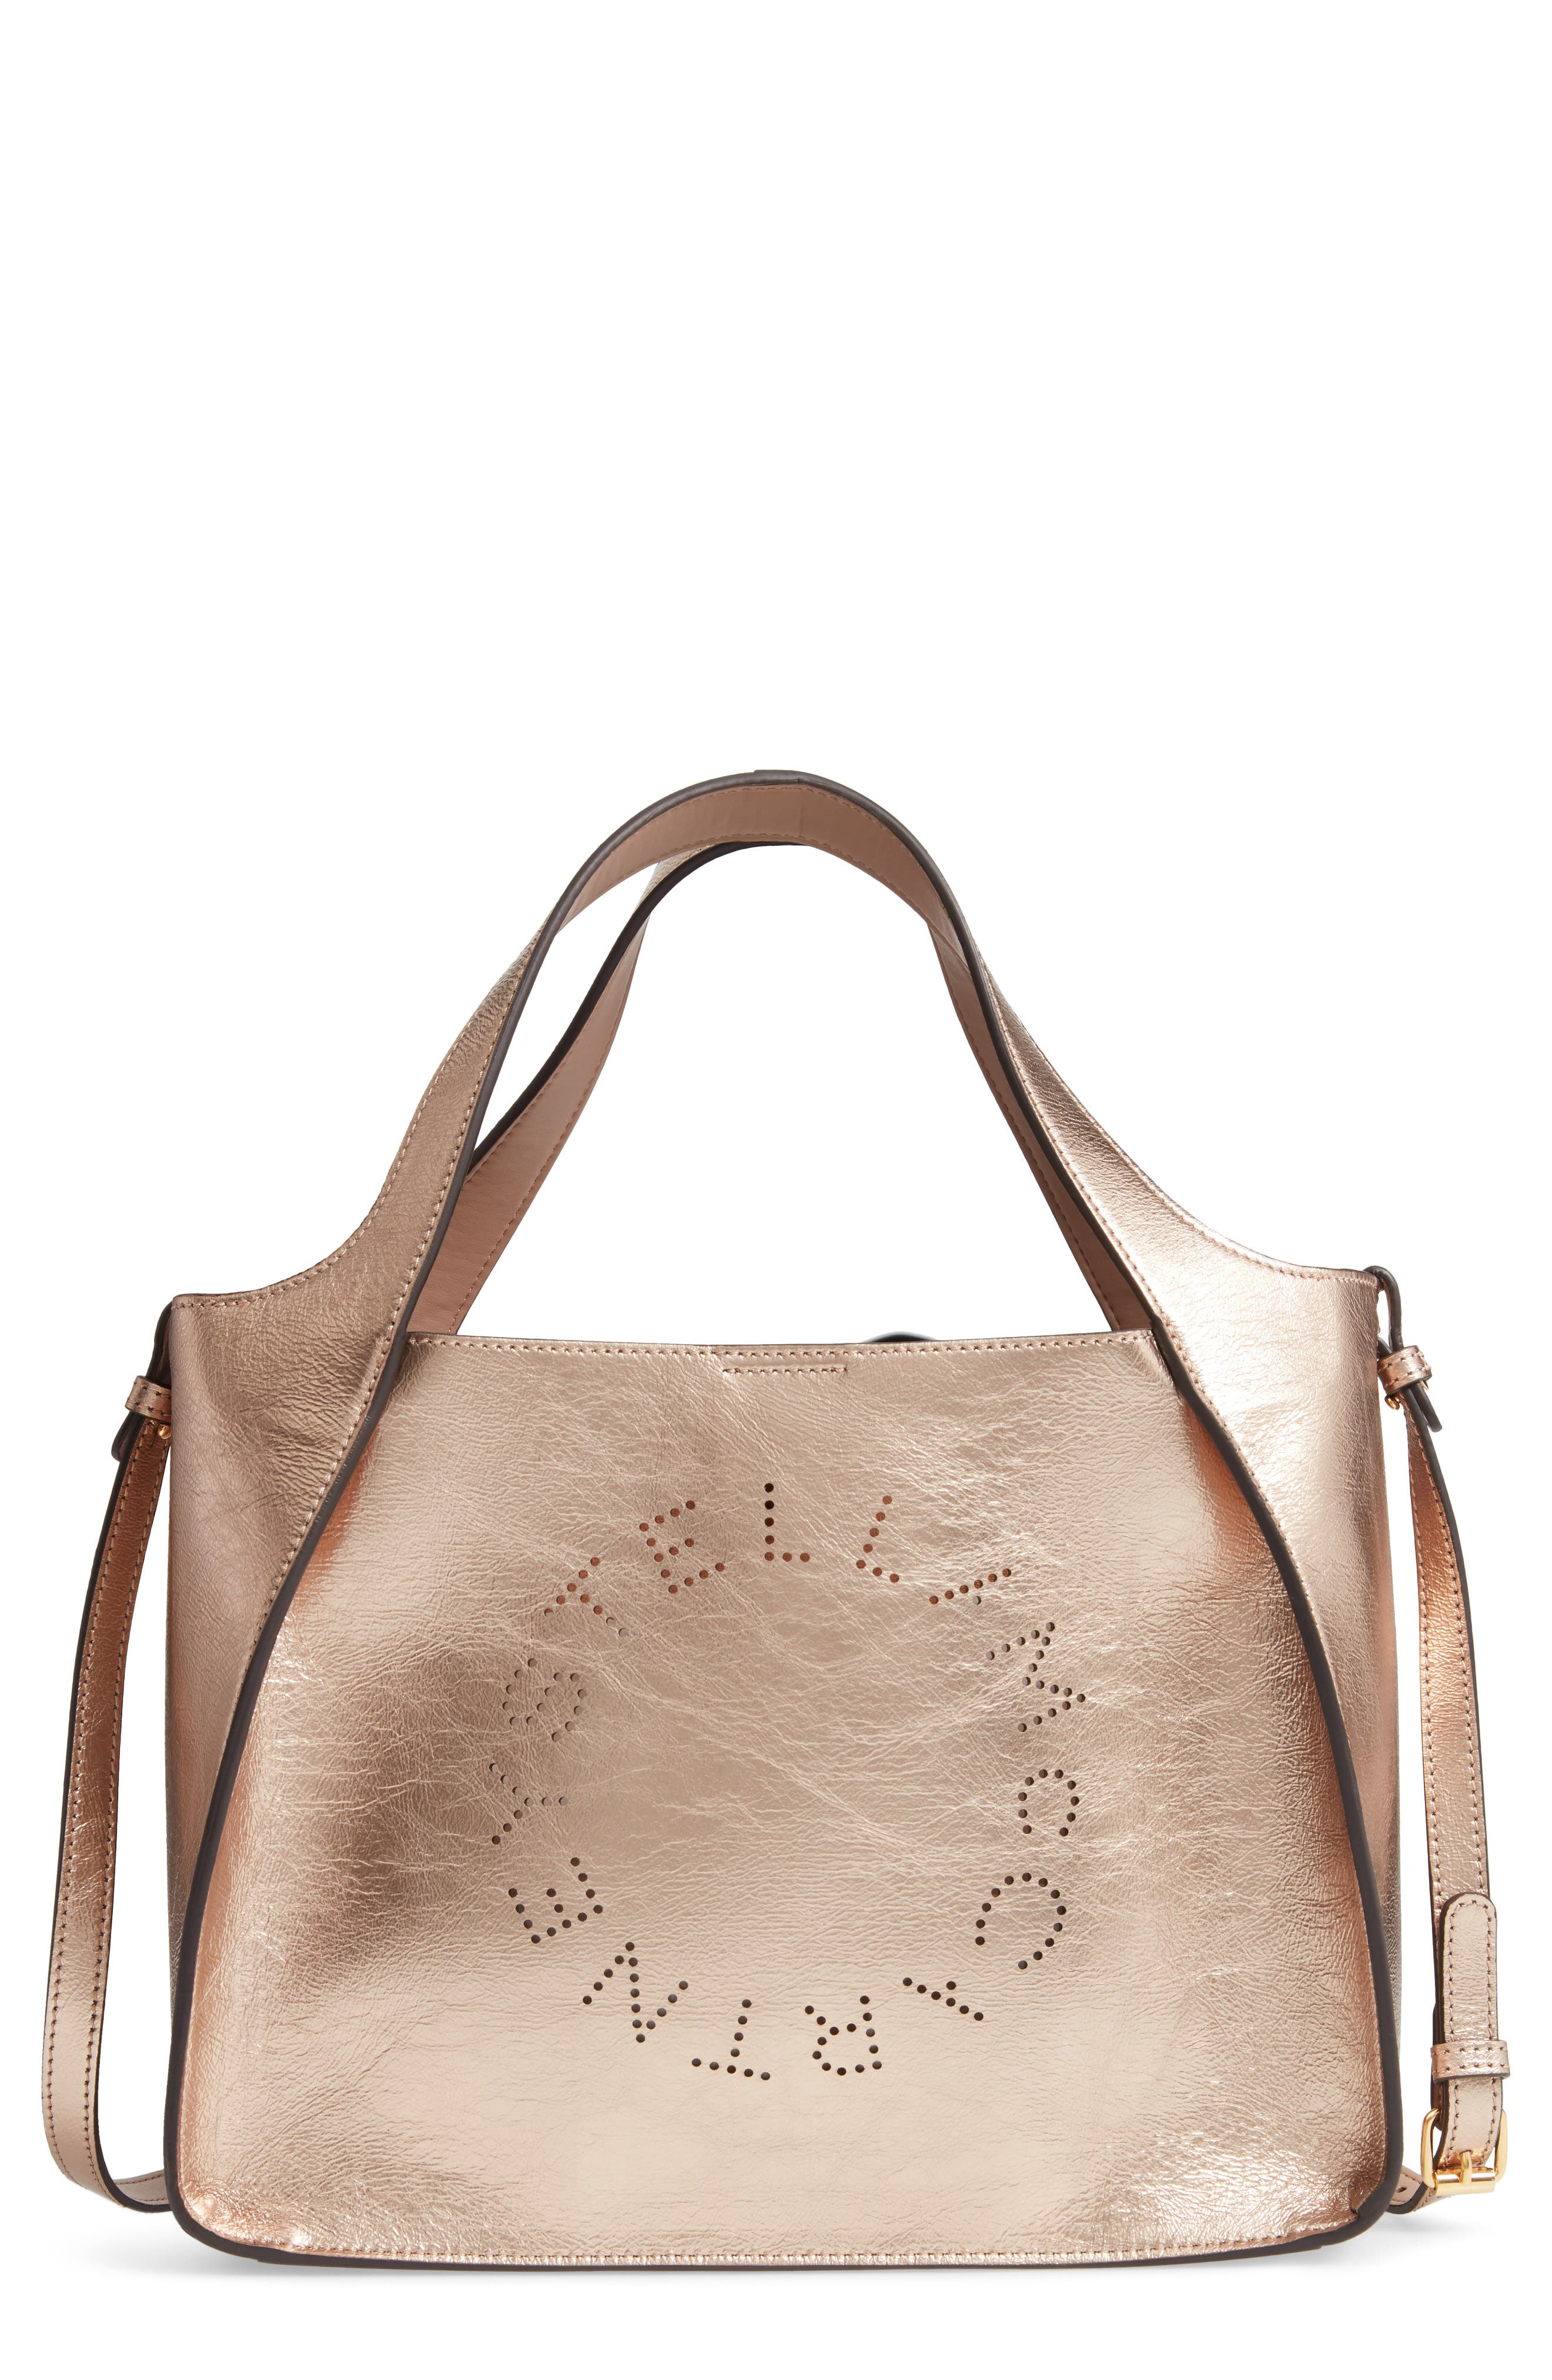 STELLA MCCARTNEY Perforated Logo Metallic Faux Leather Satchel, Main, color, ROSE GOLD